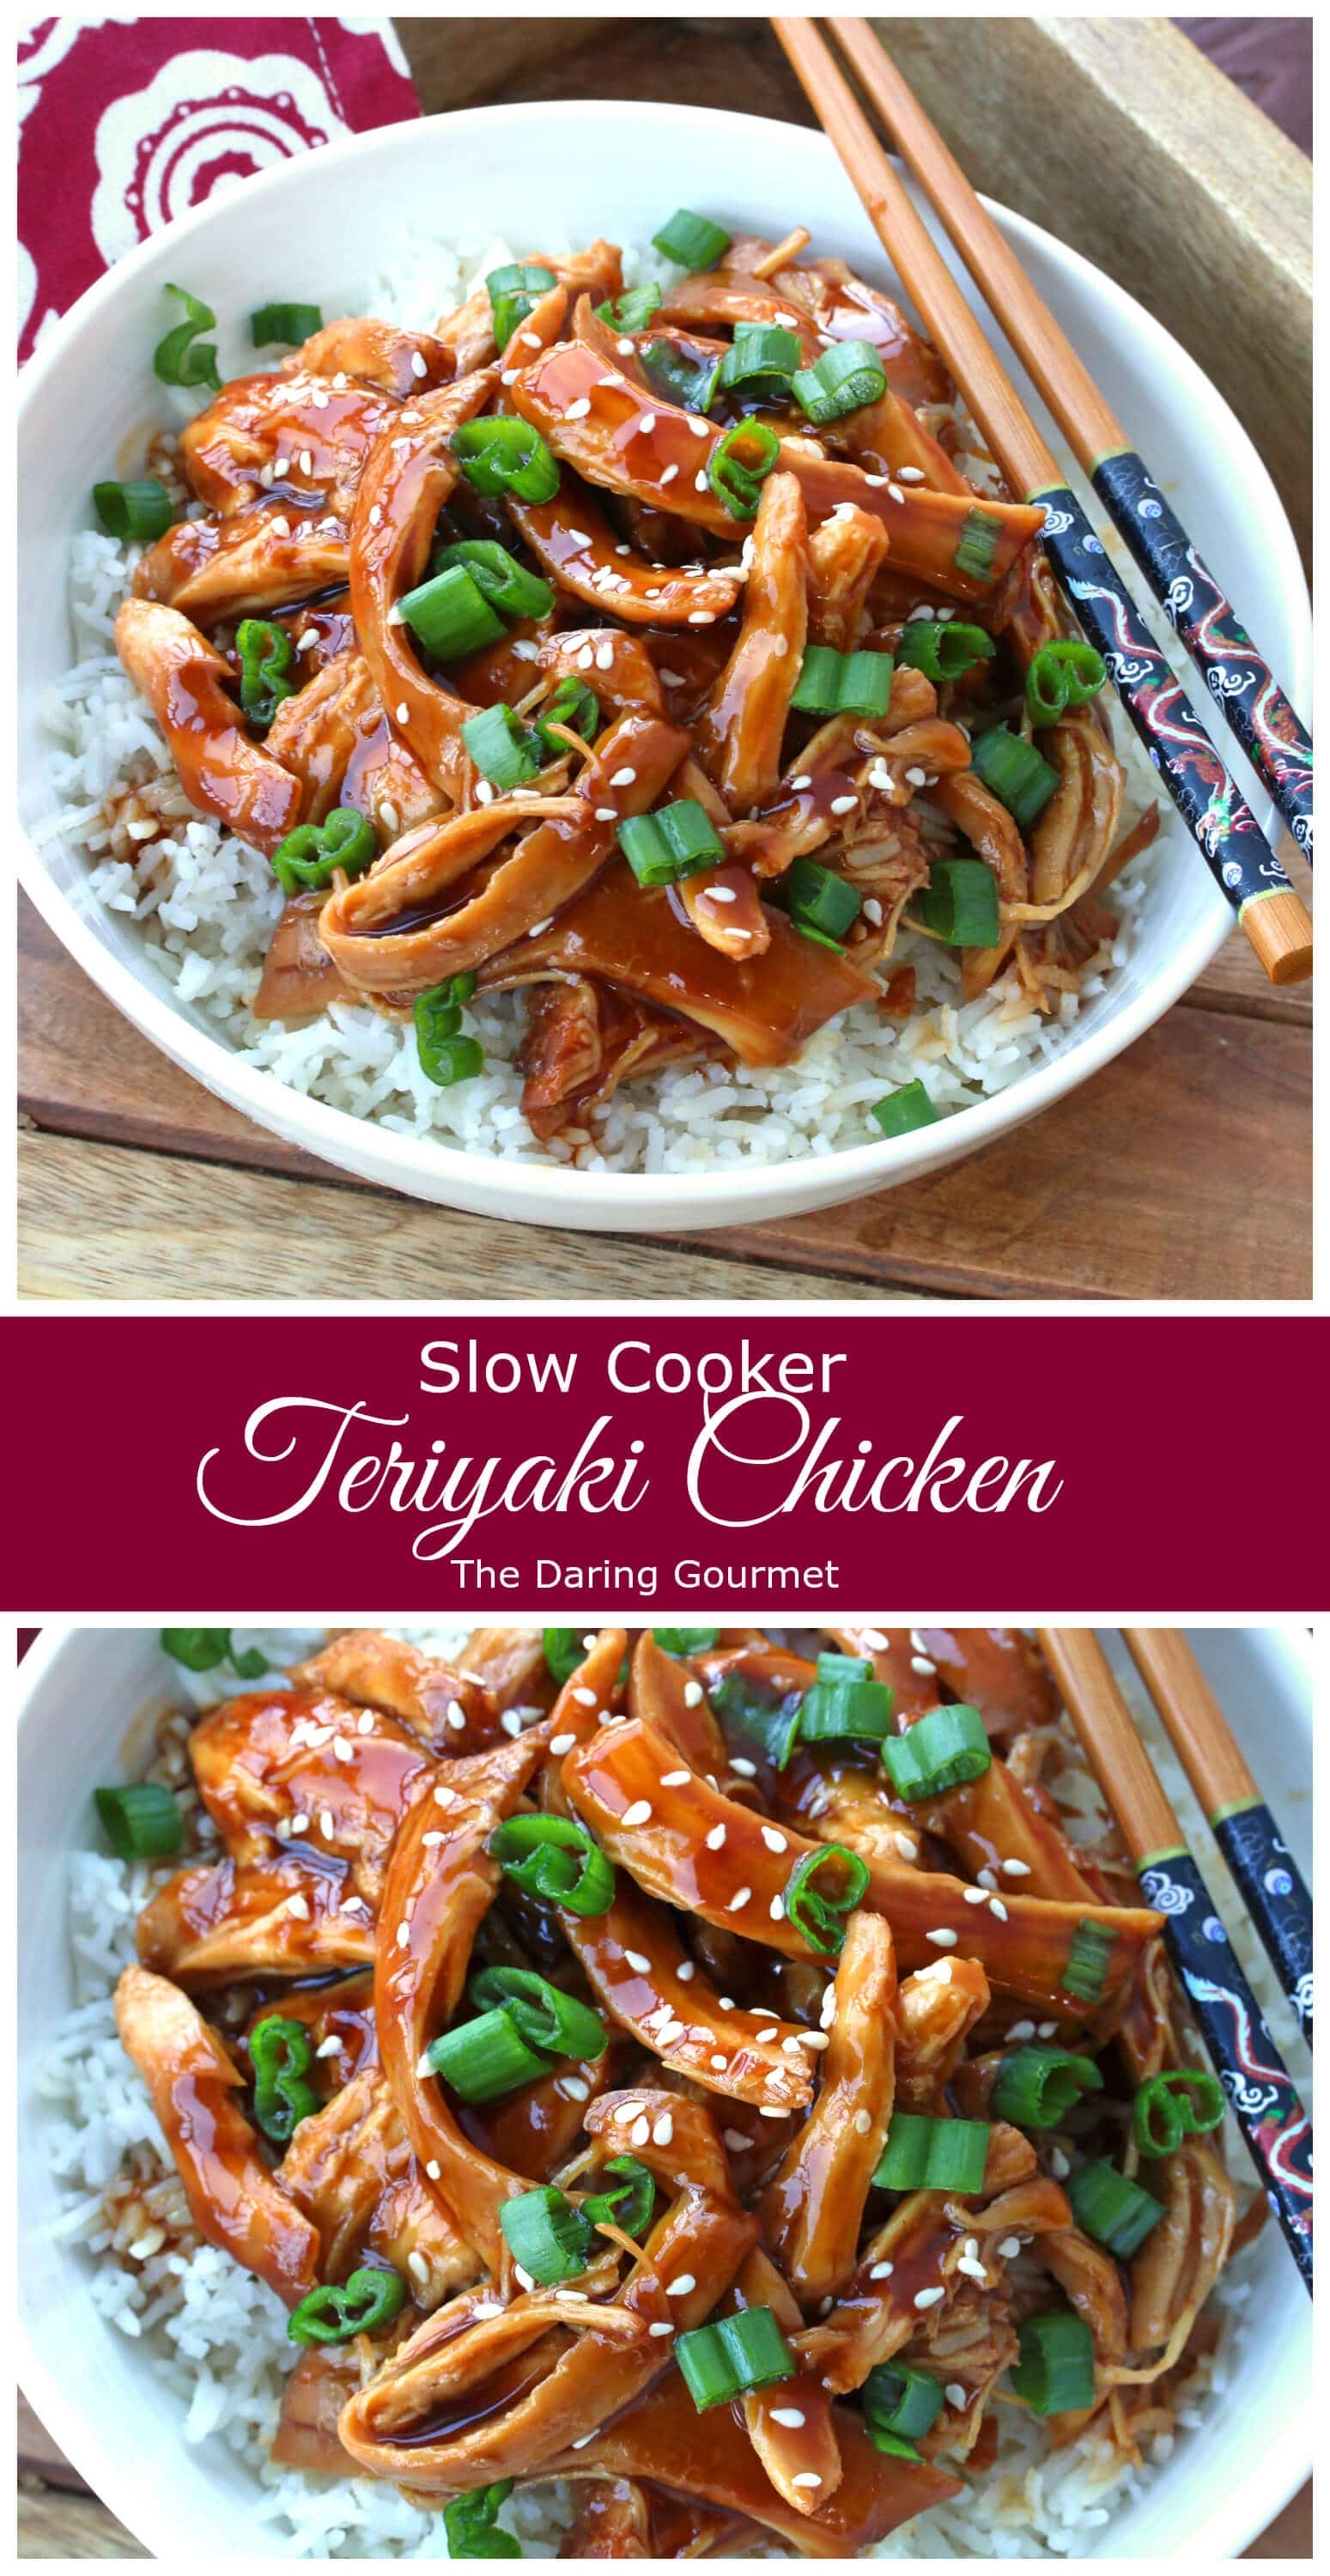 teriyaki chicken recipe slow cooker